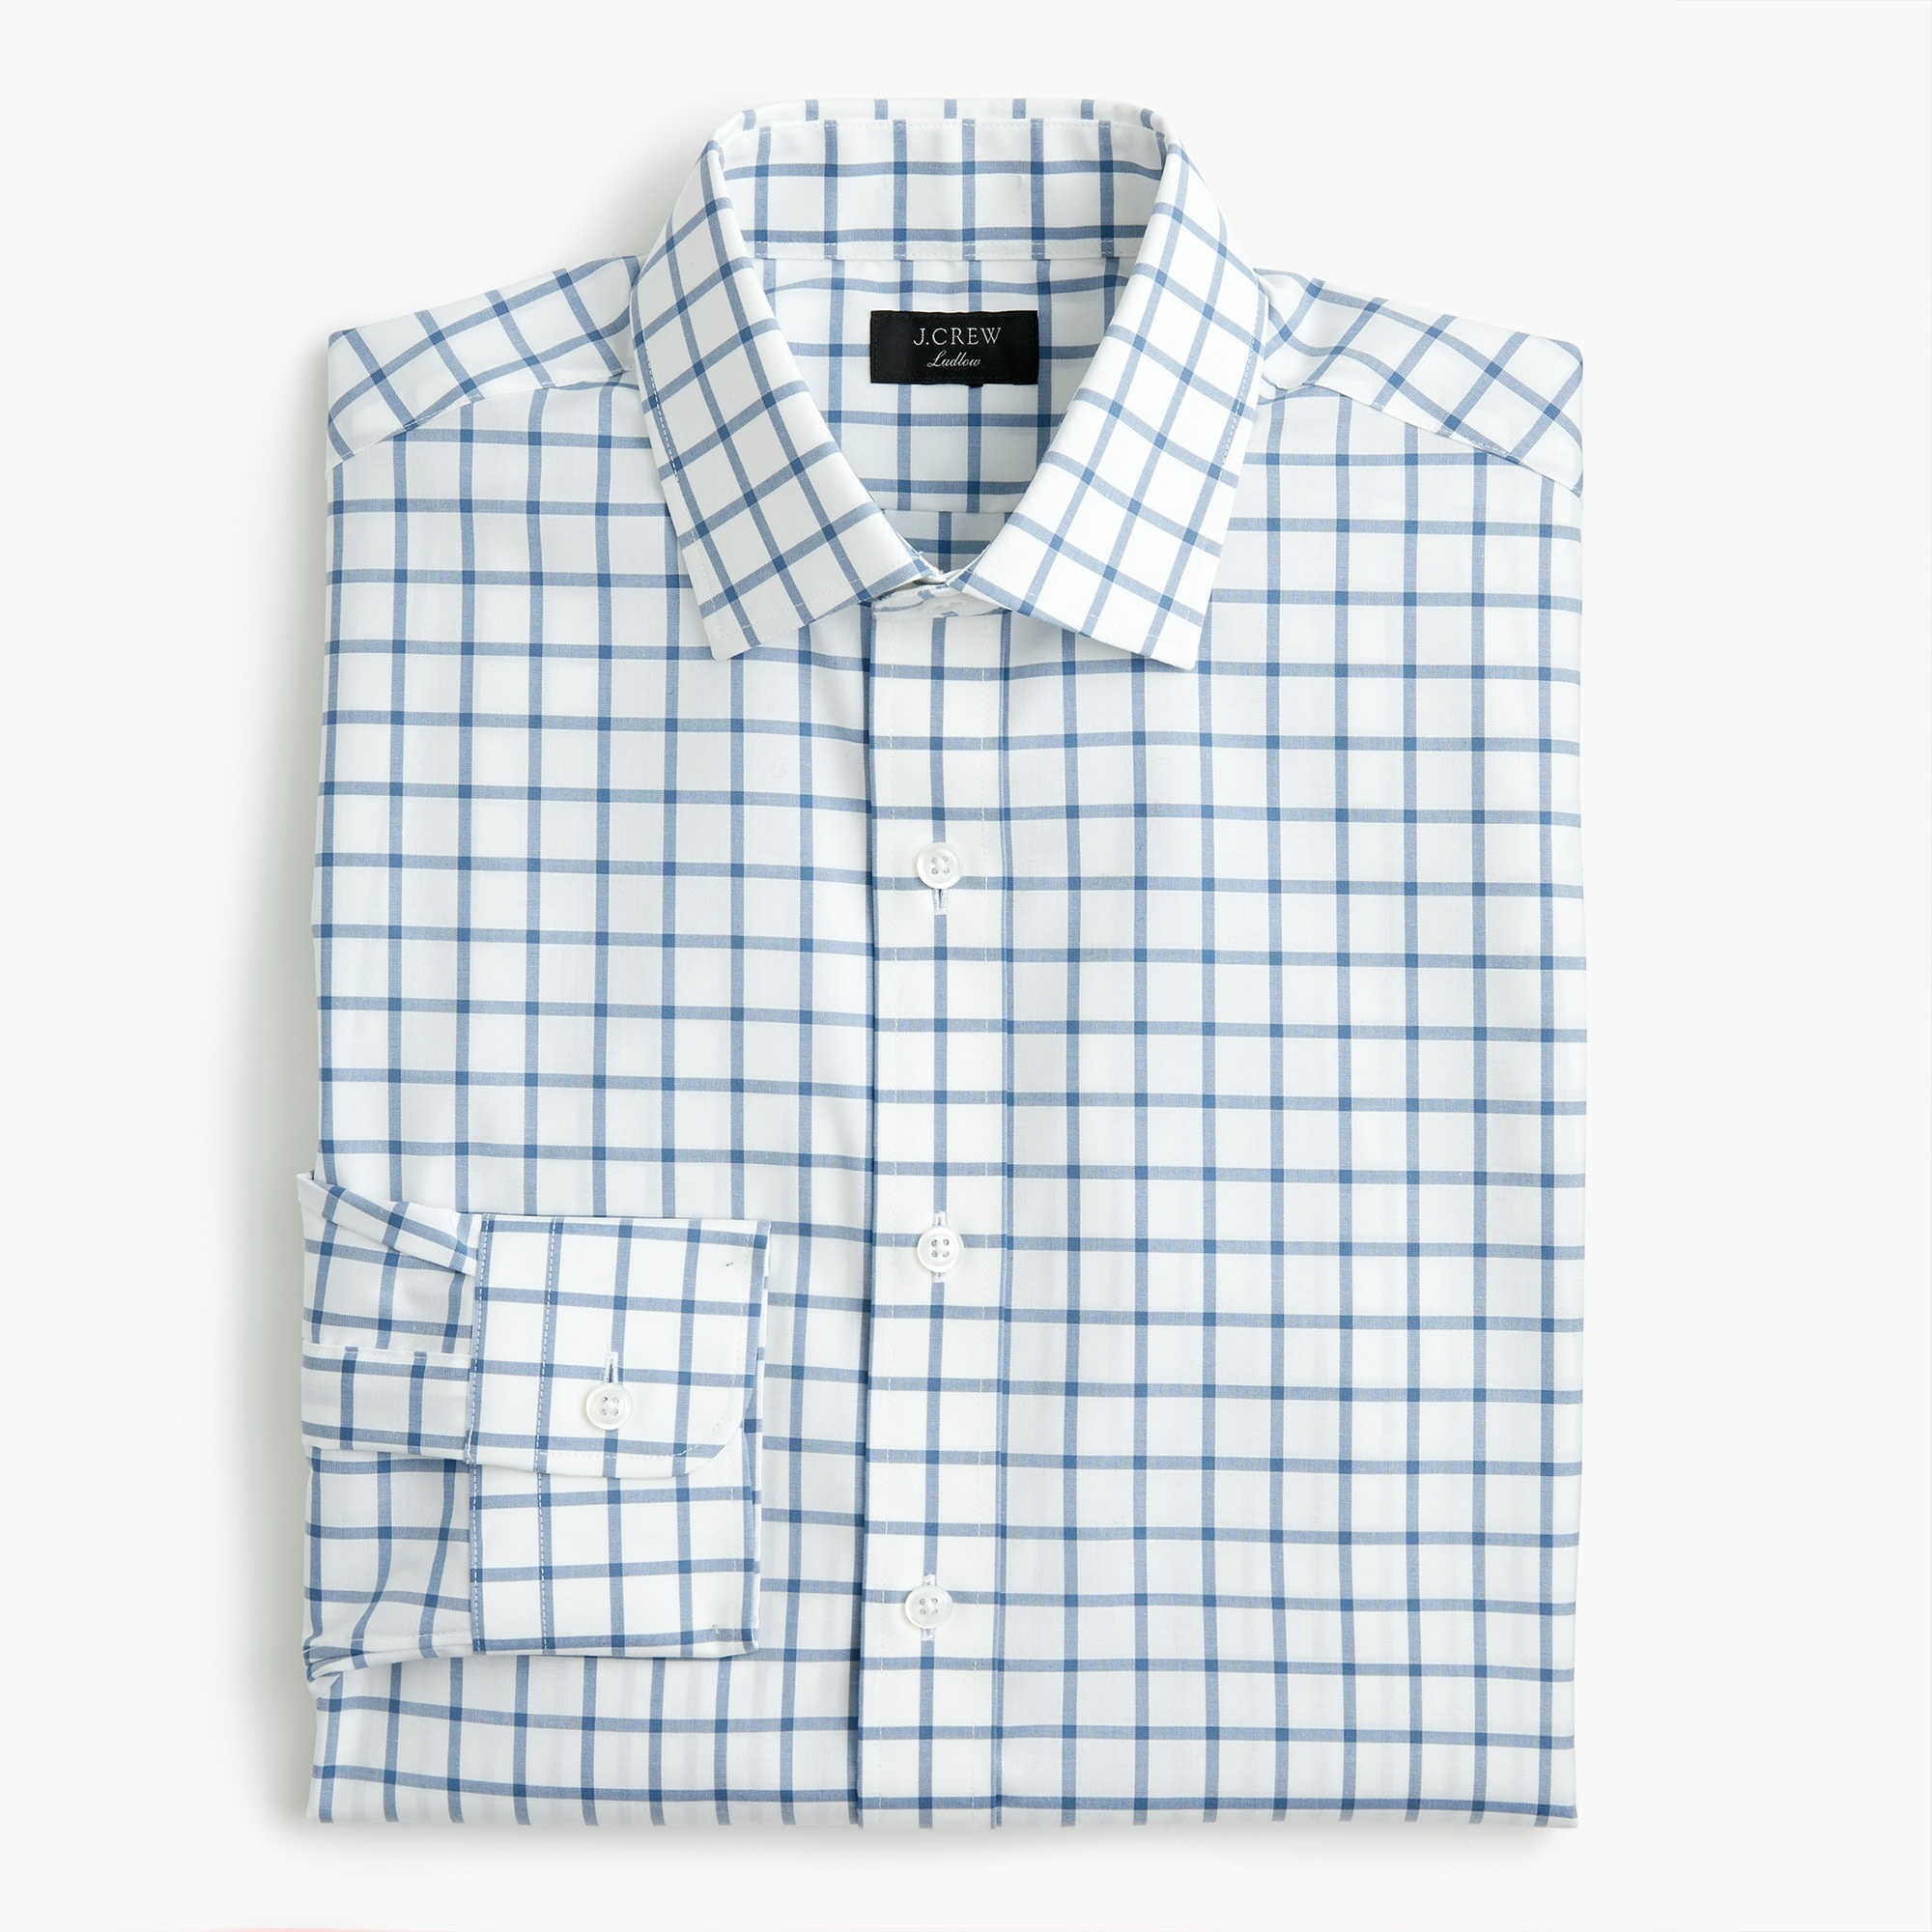 Classic Ludlow stretch two-ply easy-care cotton dress shirt in mini windowpane